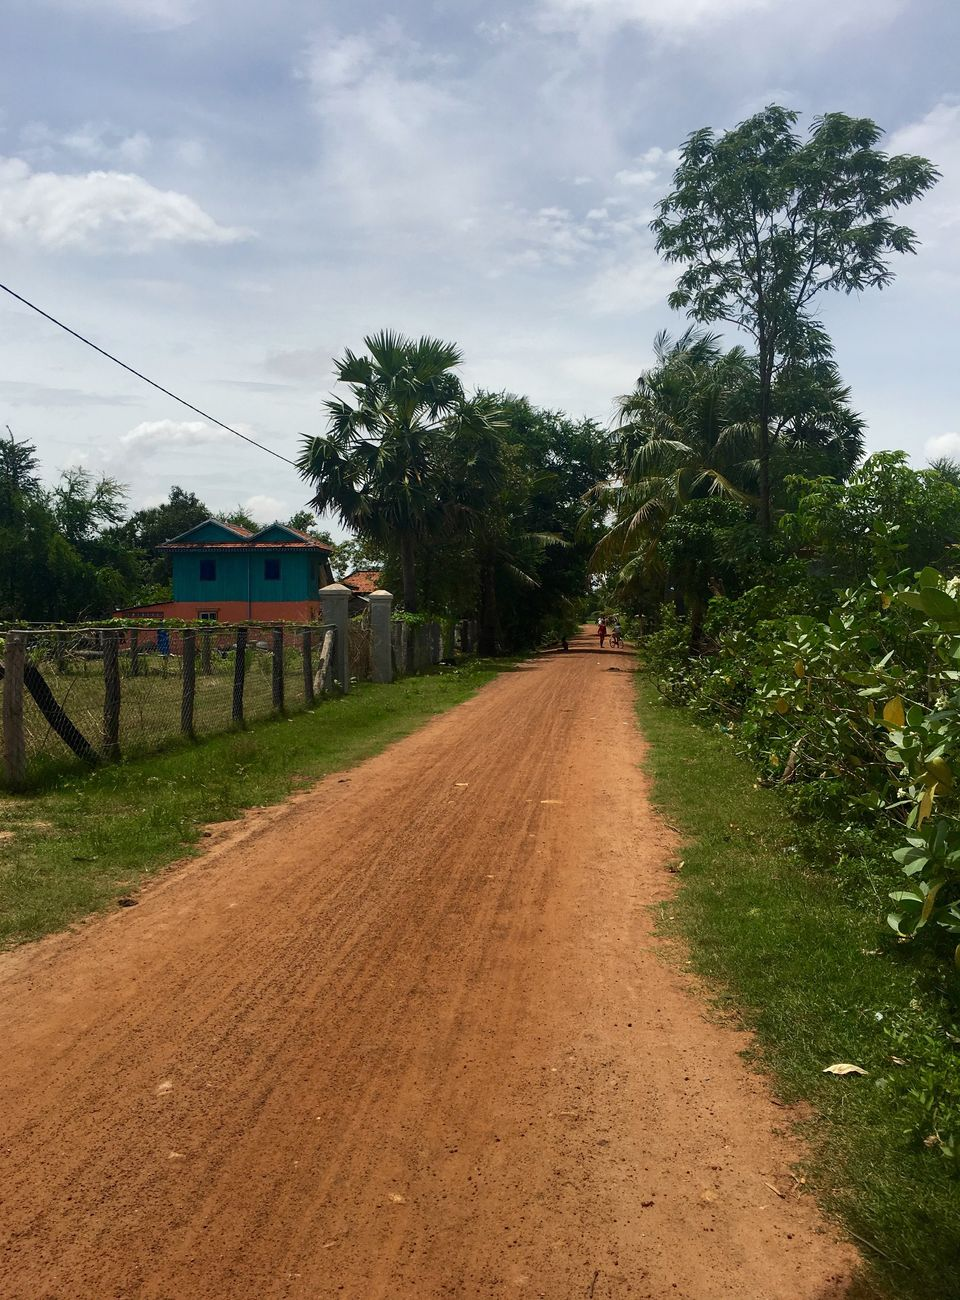 The dirt road in a Kampong Speu village on which many of the recruited brides drive to get to